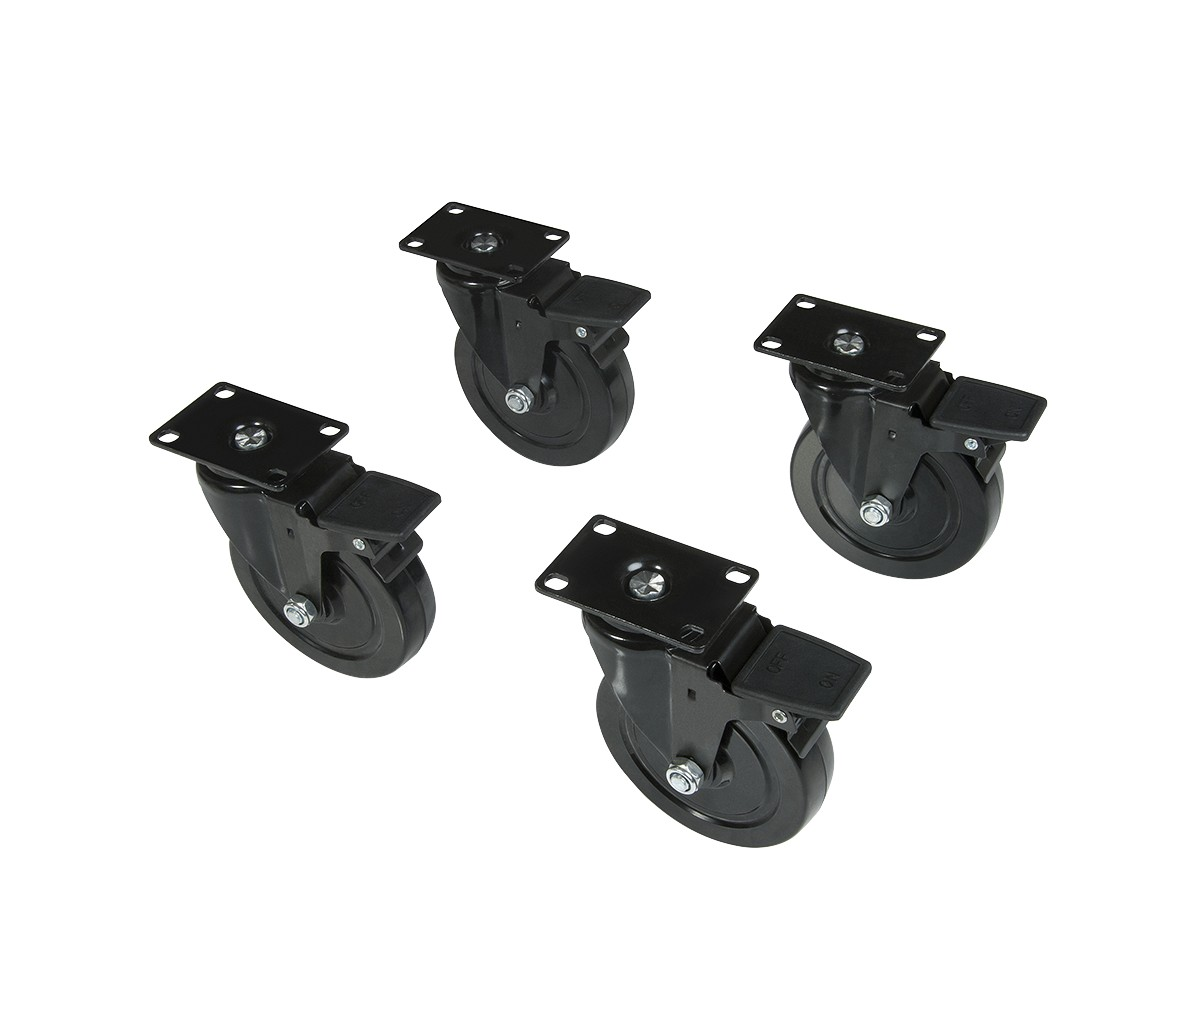 RMGSCK ground stack caster kit